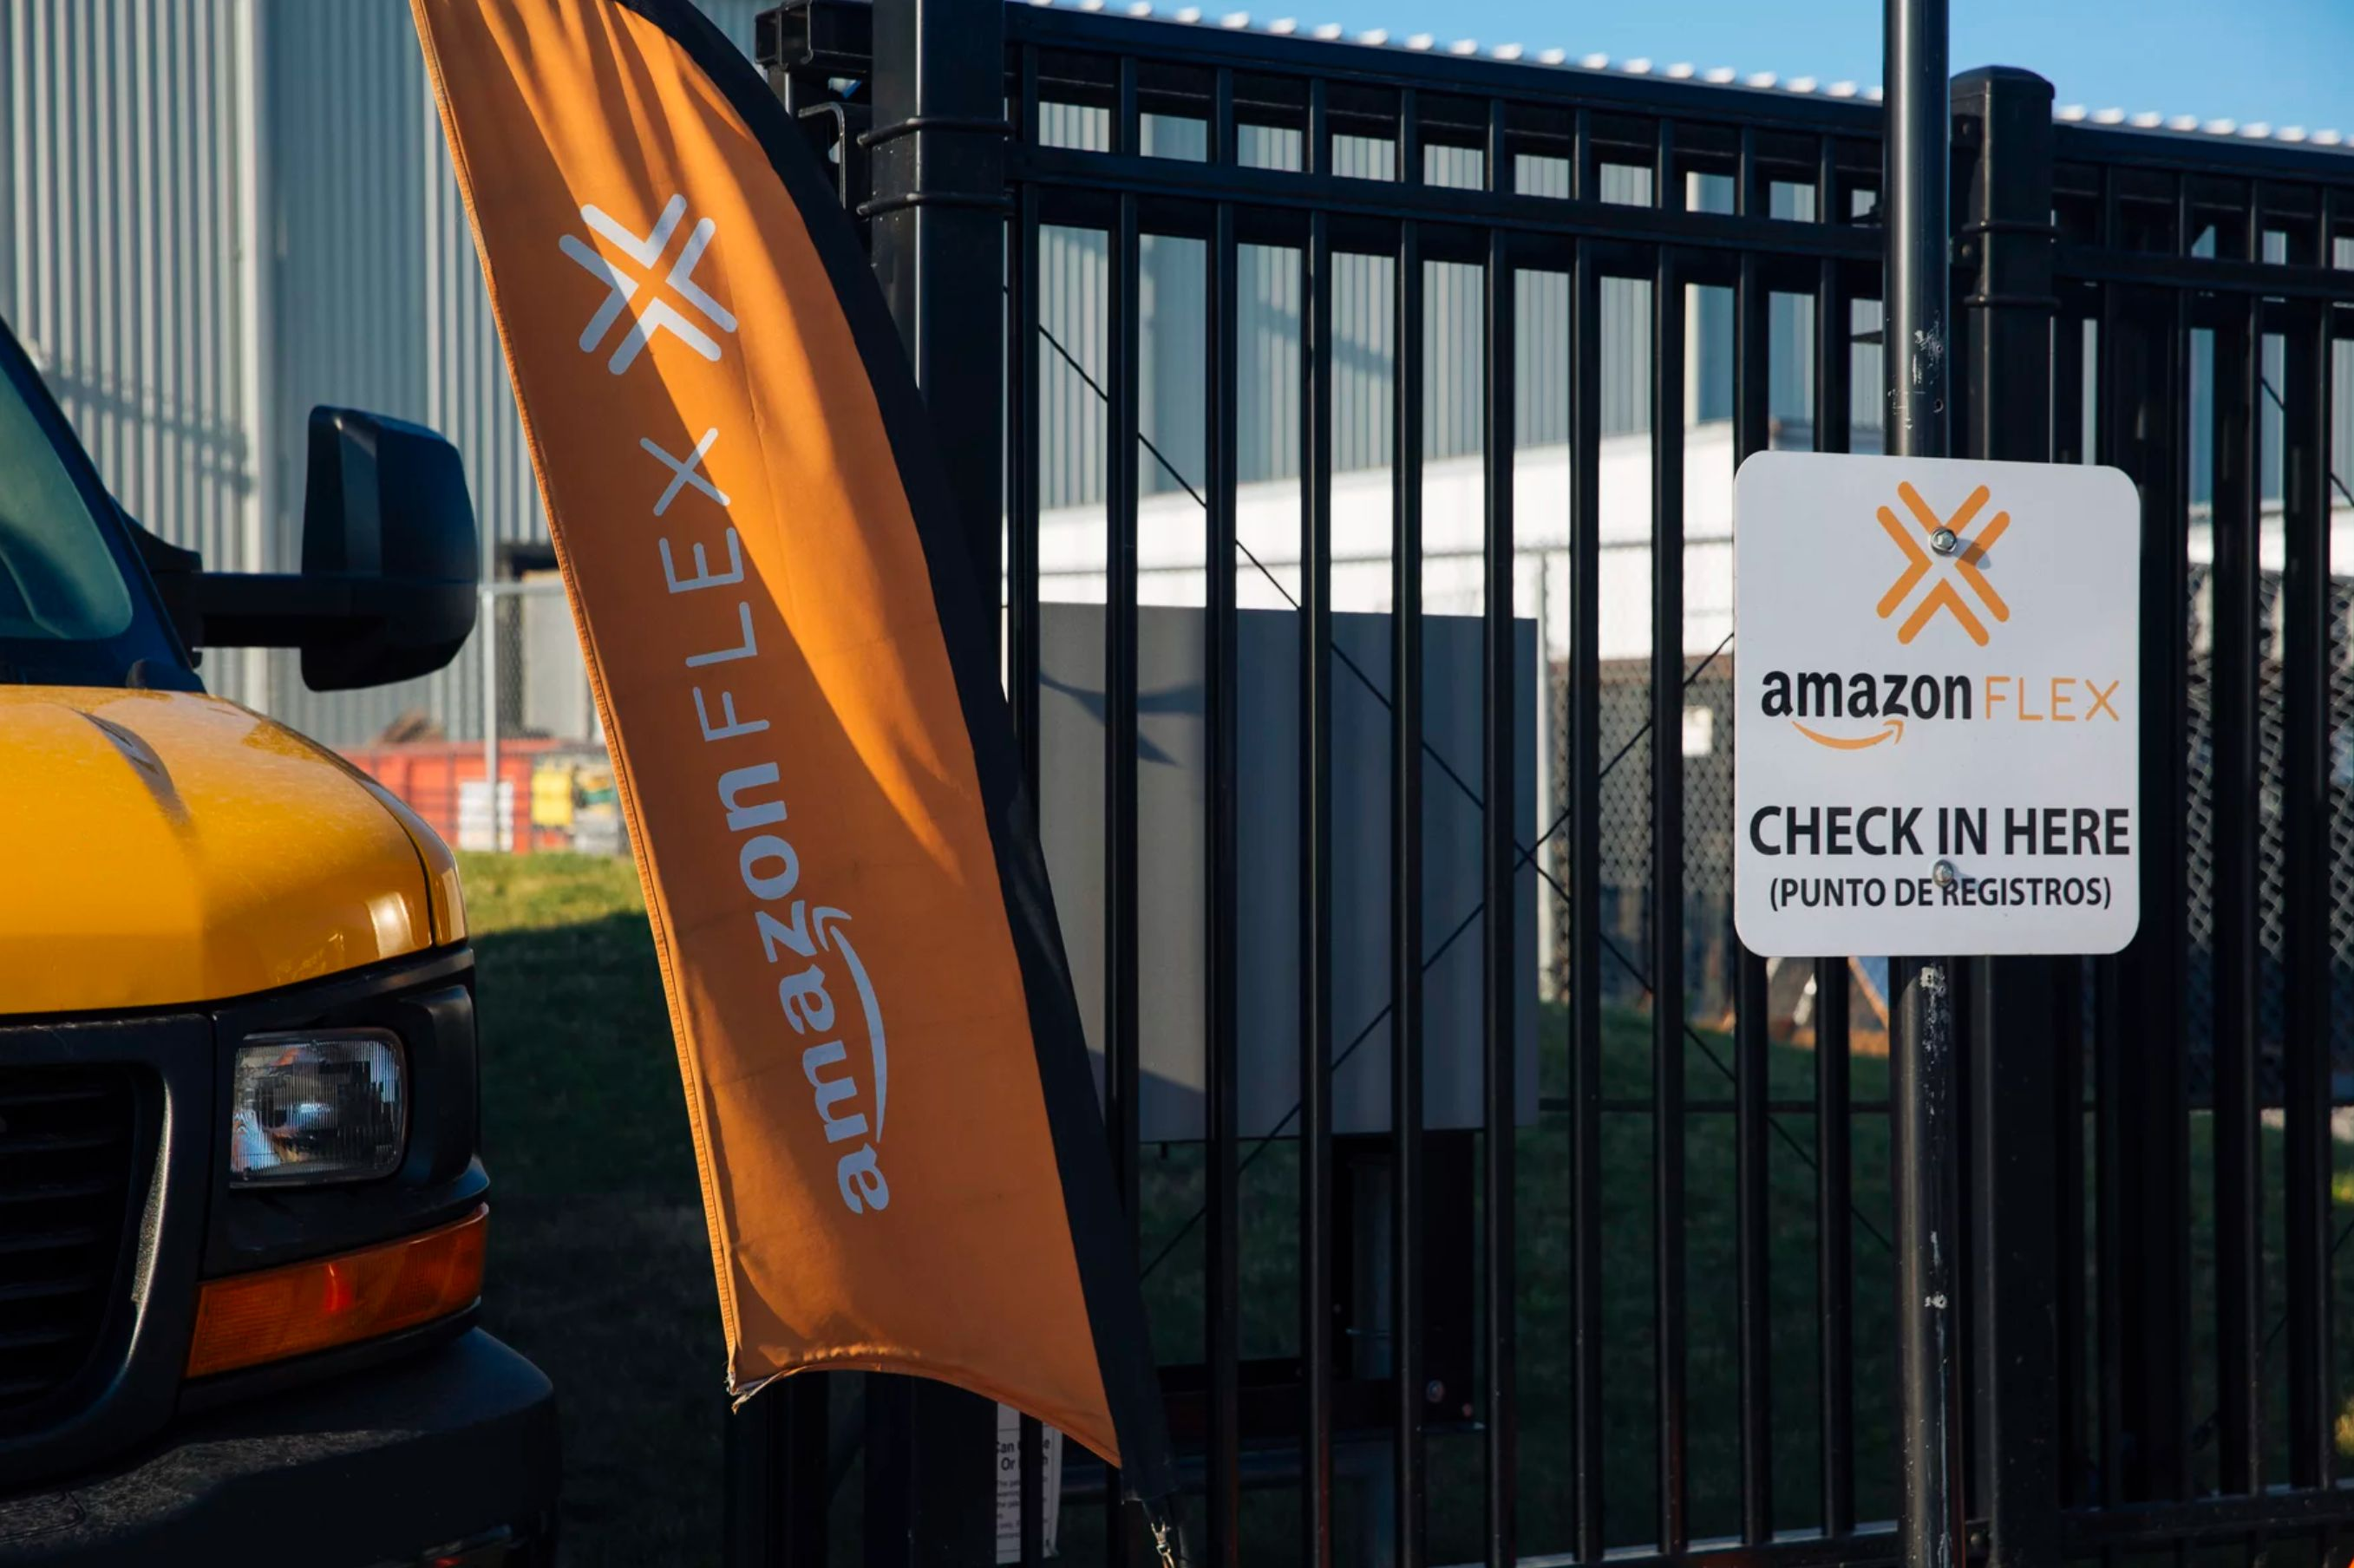 A check-in sign at a Chicago warehouse for Amazon Flex drivers, who sign up for delivery shifts using their own vehicles and